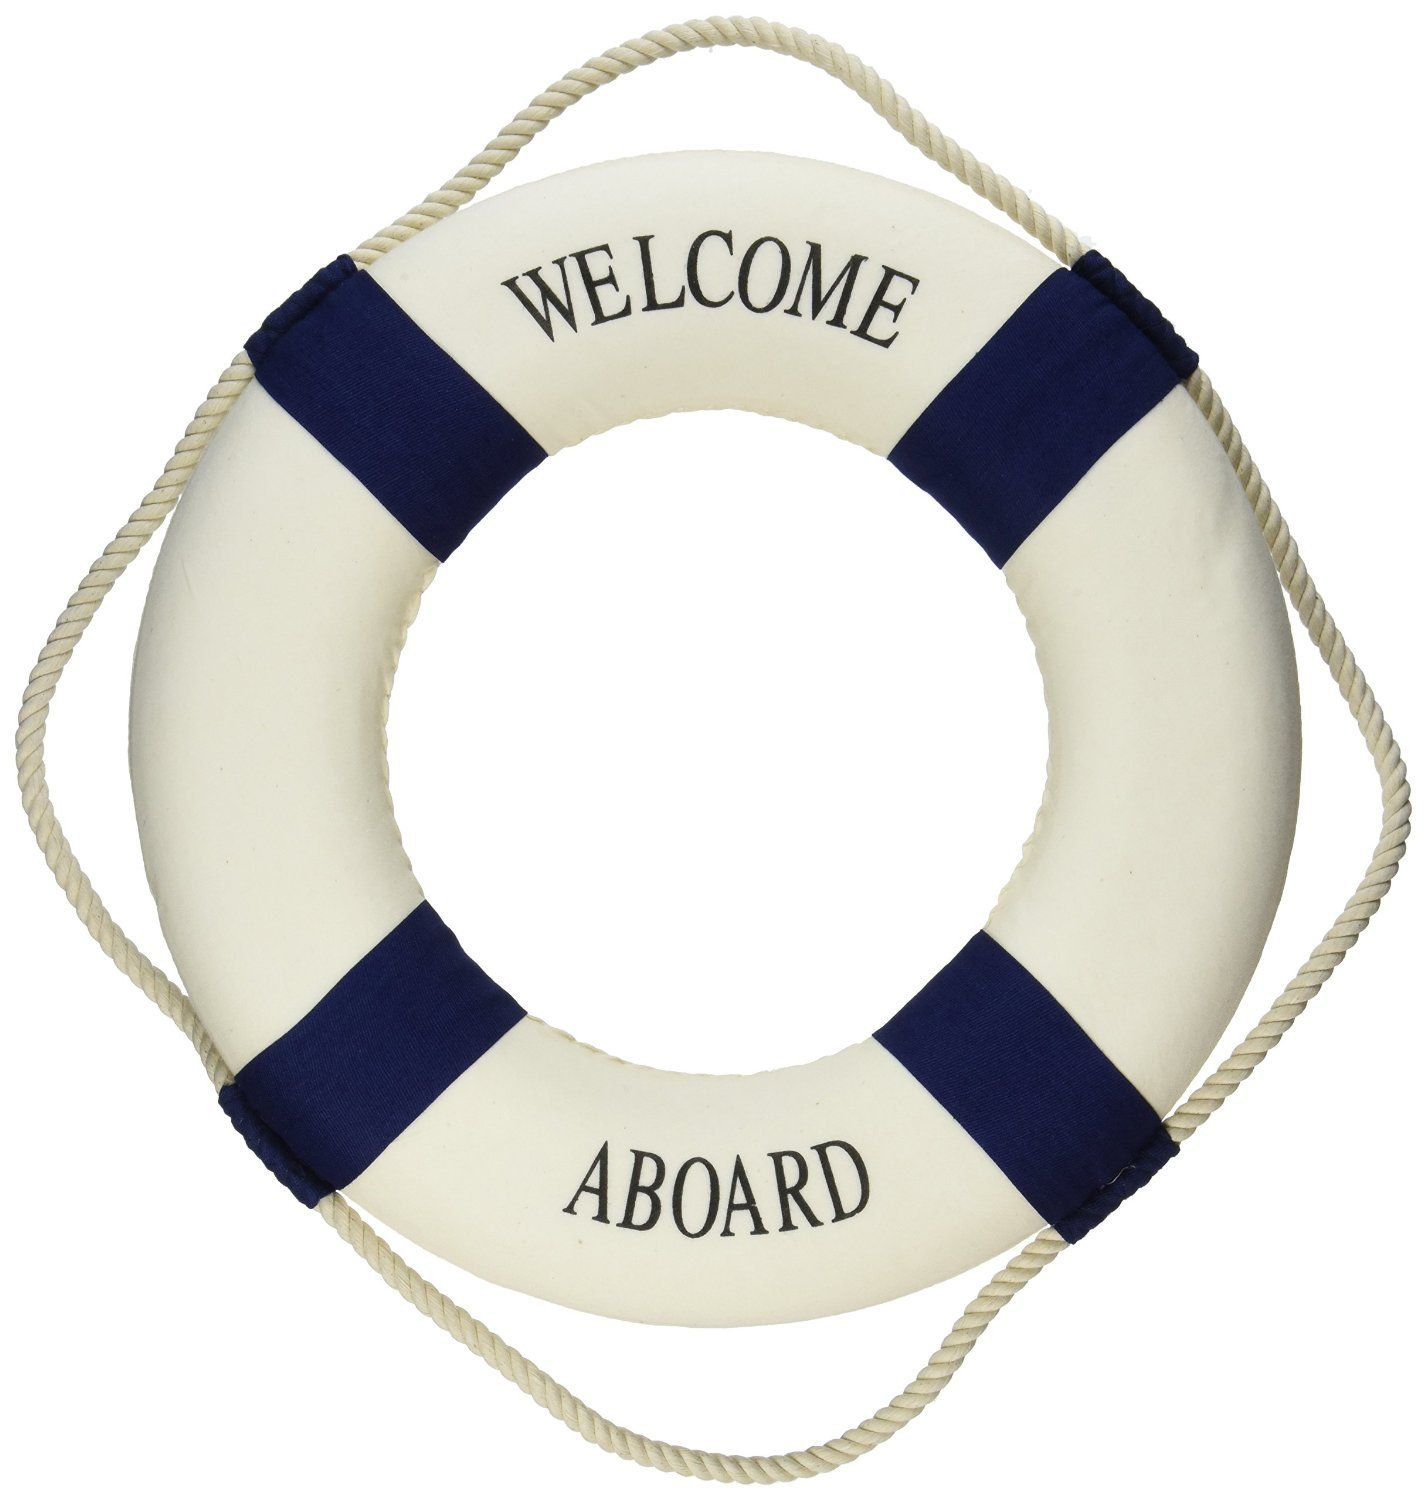 Nautical Decor Amazoncom Welcome Aboard Cloth Life Ring Navy Accent Nautical